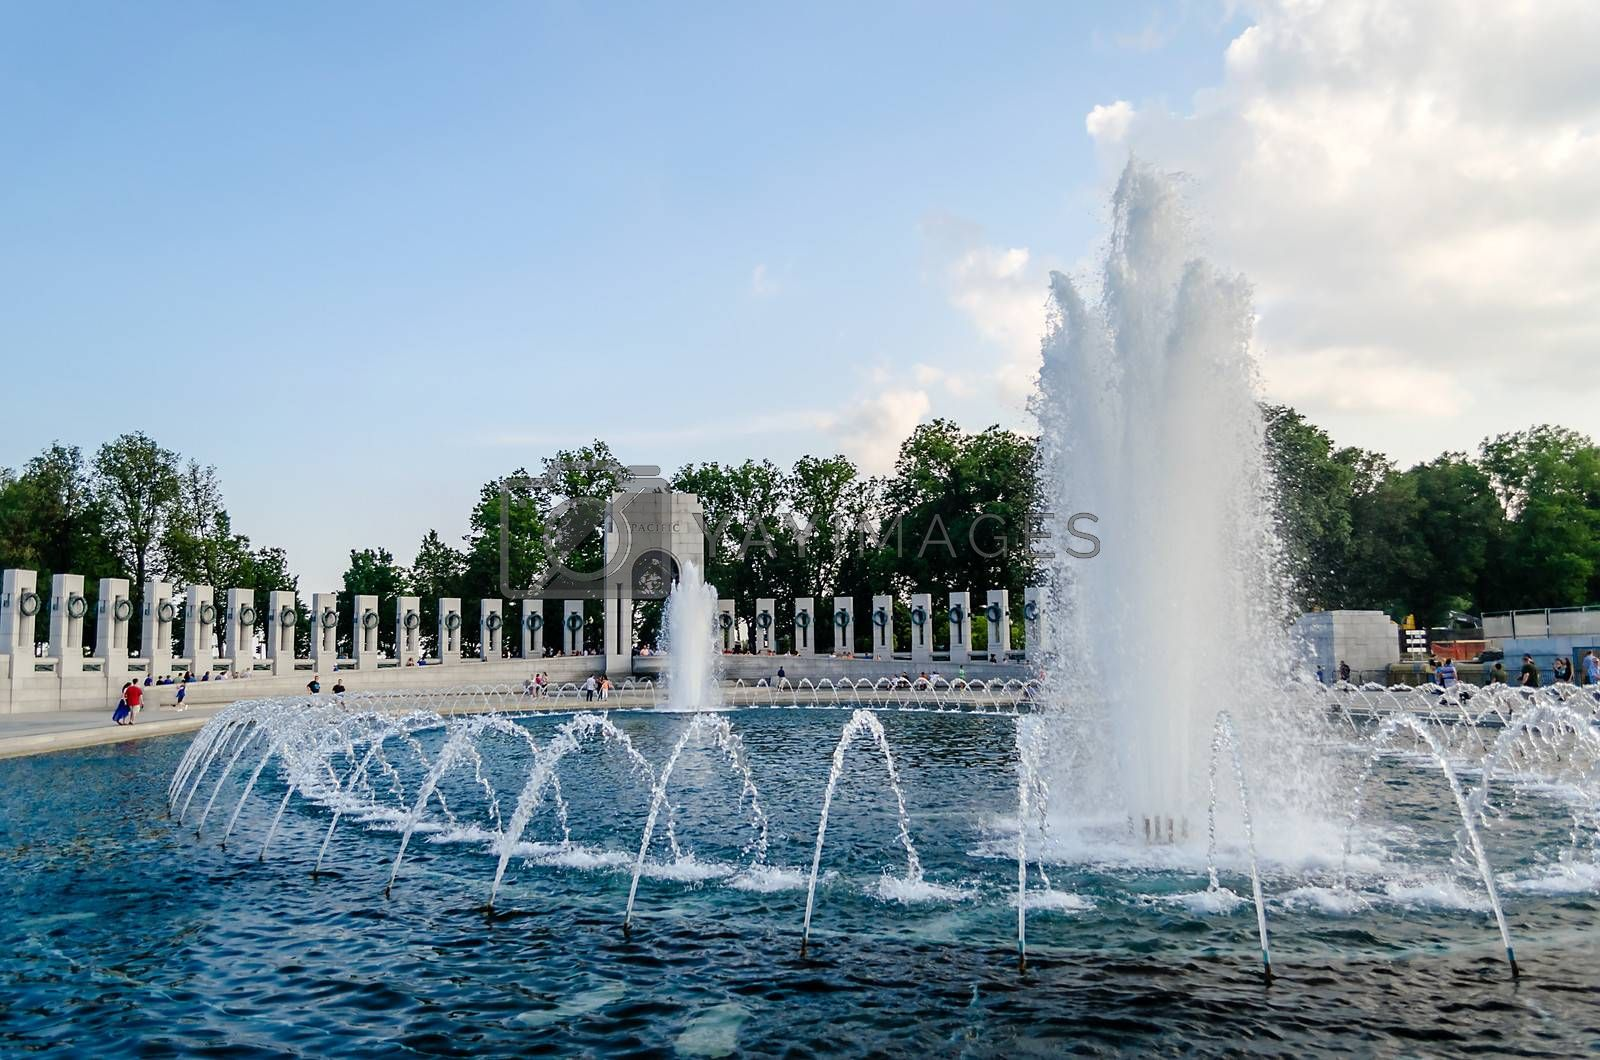 World War II Memorial in Washington DC, USA